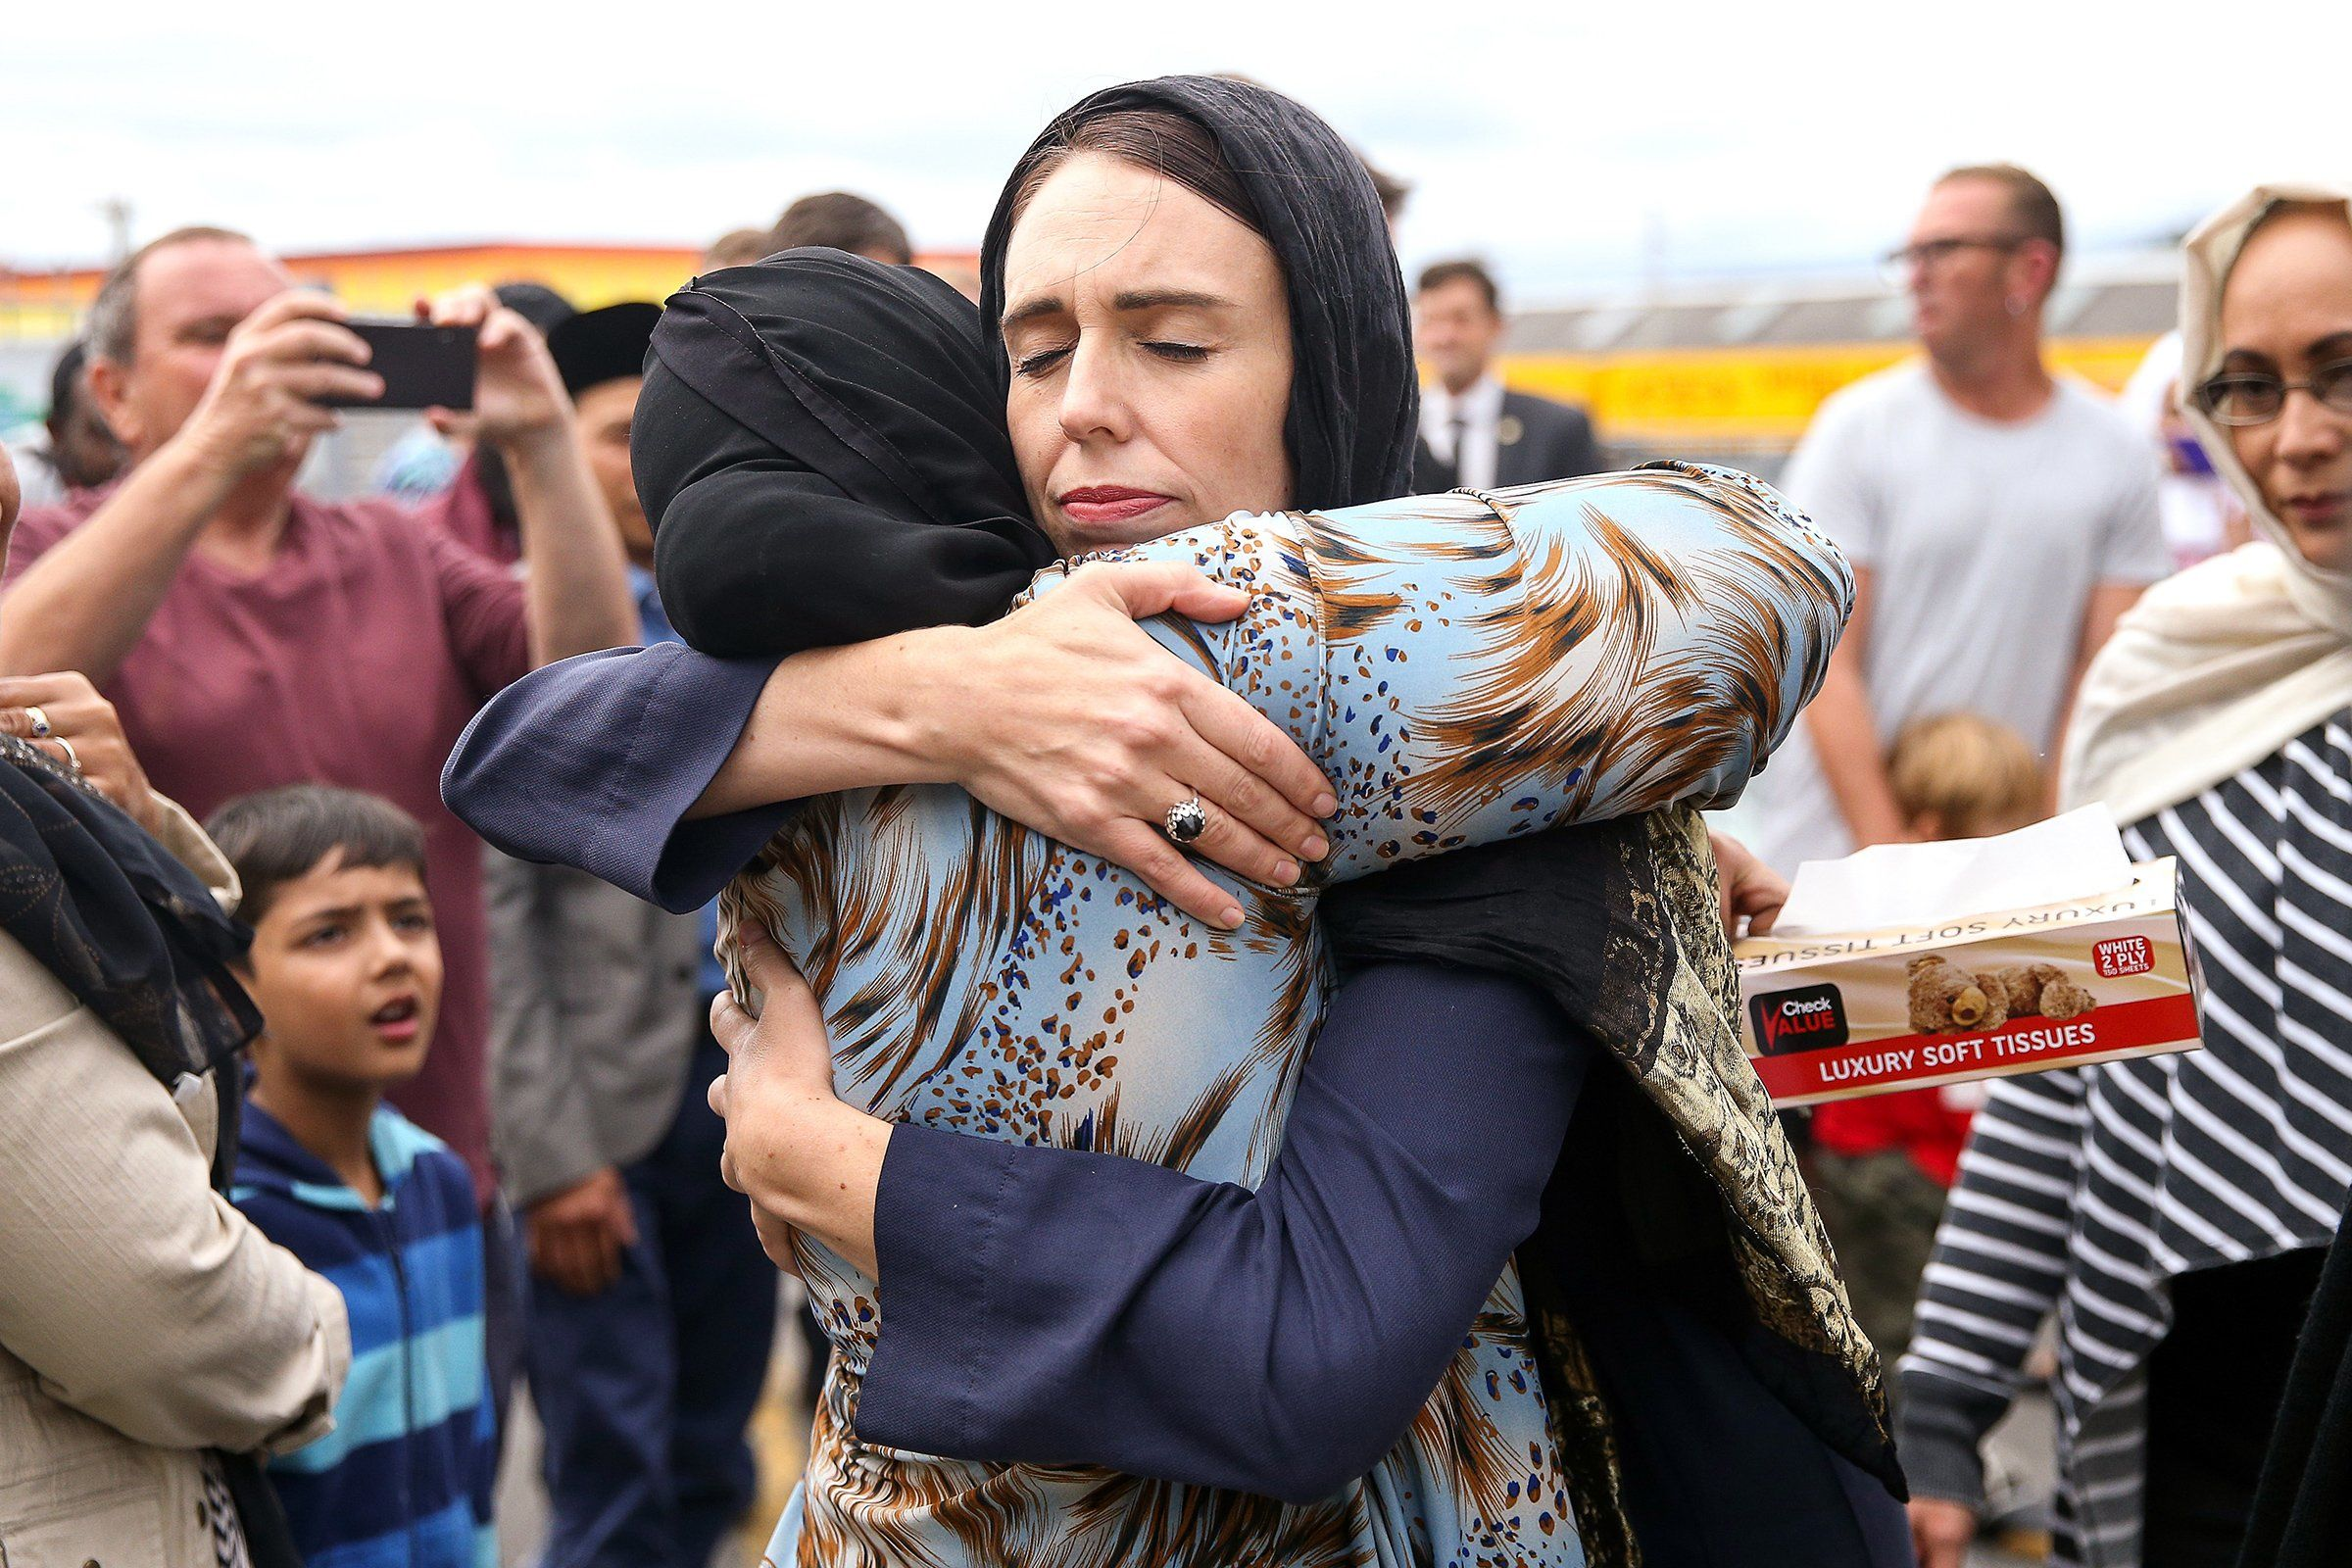 In the wake of the Christchurch attack, New Zealand Prime Minister Jacinda Ardern hugs a mosque-goer at the Kilbirnie Mosque in Wellington on March 17.